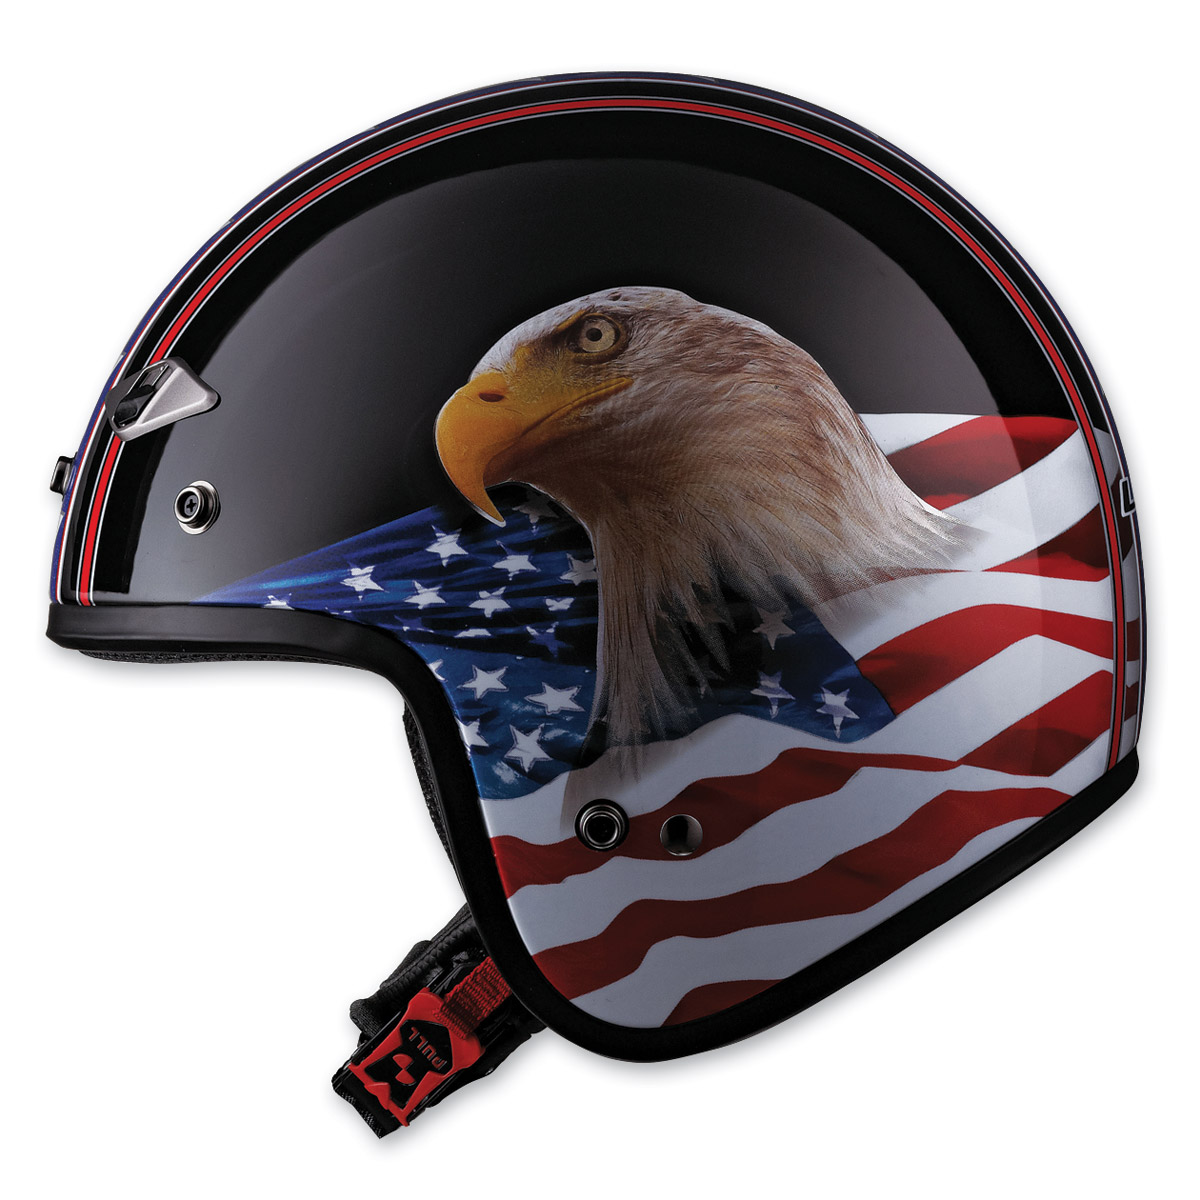 LS2 OF567 Eagle Black Open Face Helmet